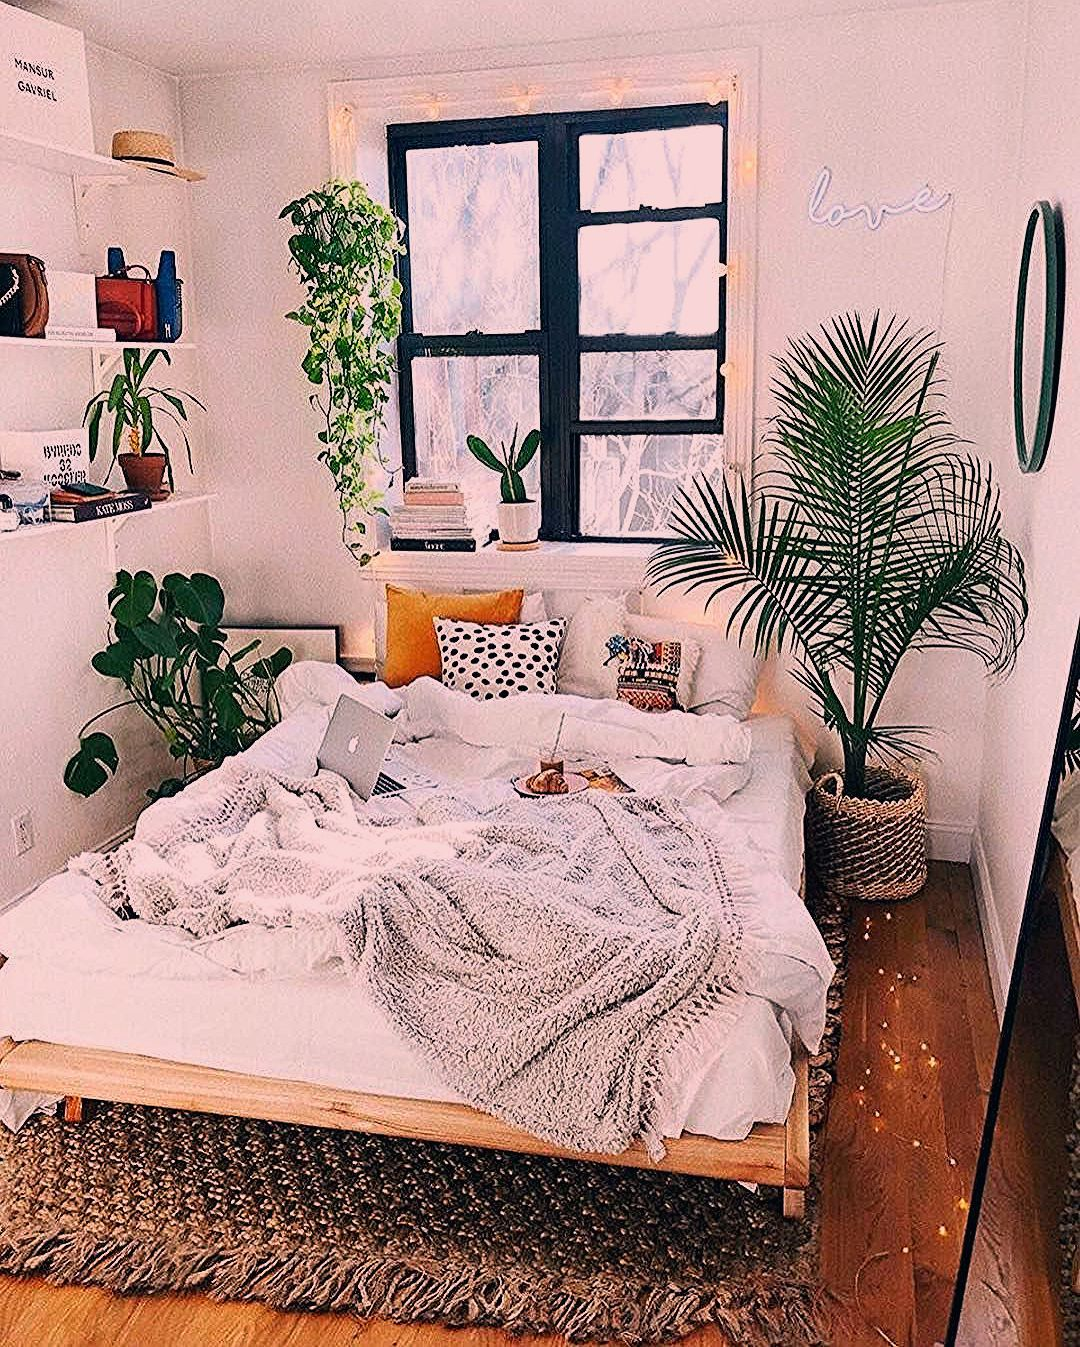 Urban Outfitters Home On Instagram Dream Bedroom Inspo Courtesy Of Viktoria Dahlberg Uohome In 2020 Urban Outfitters Bedroom Urban Bedroom Urban Outfitters Room